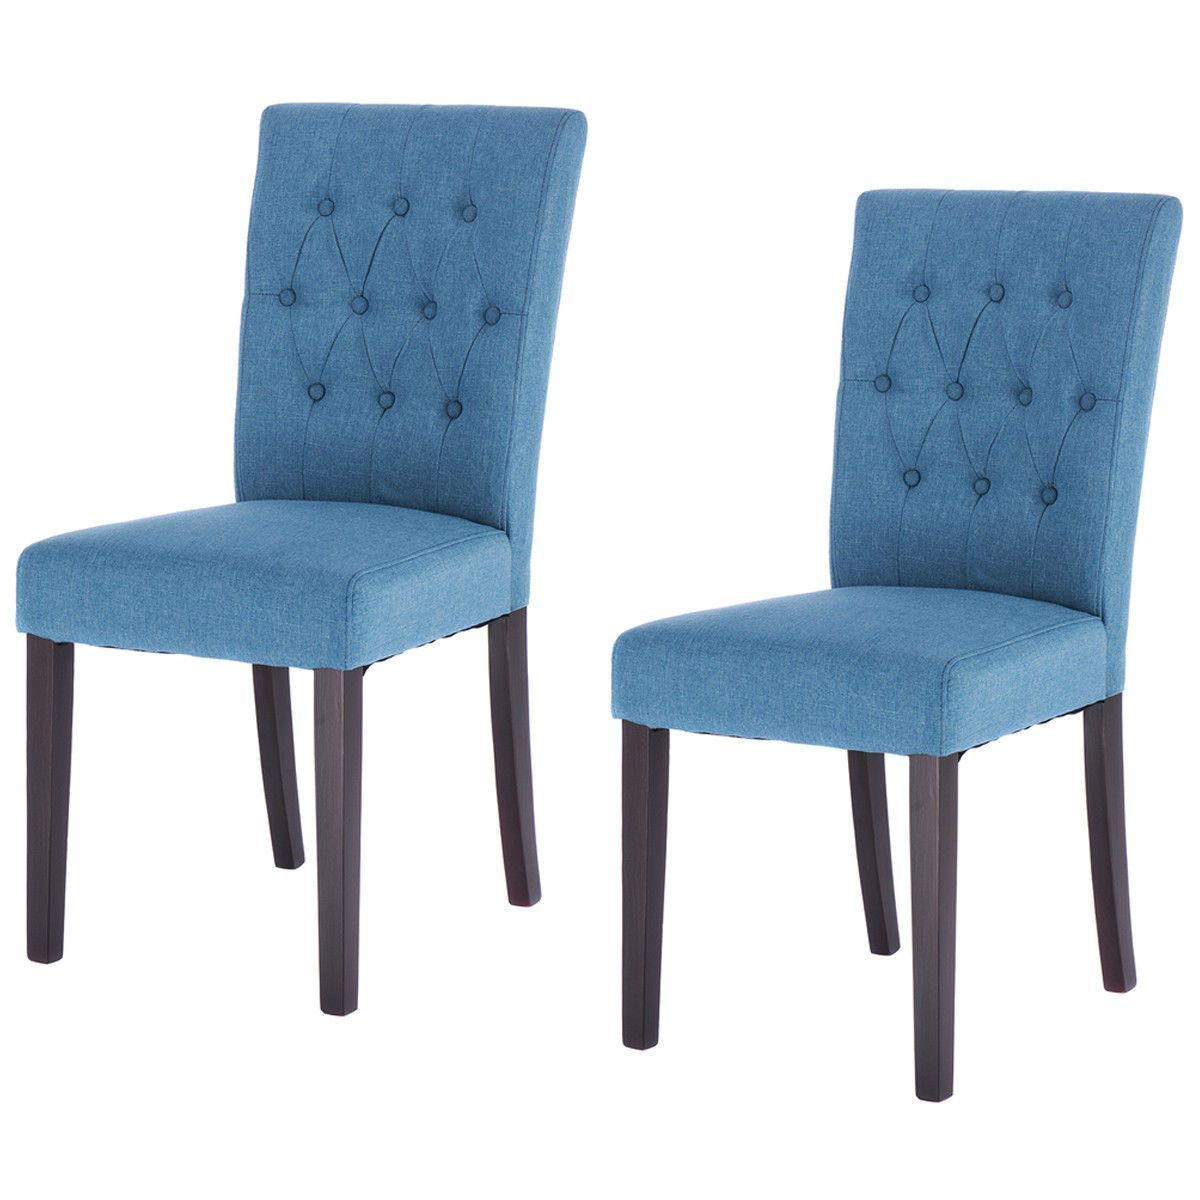 Surprising Giantex Set Of 2Pcs Modern Fabric Dining Chair Armless Gmtry Best Dining Table And Chair Ideas Images Gmtryco